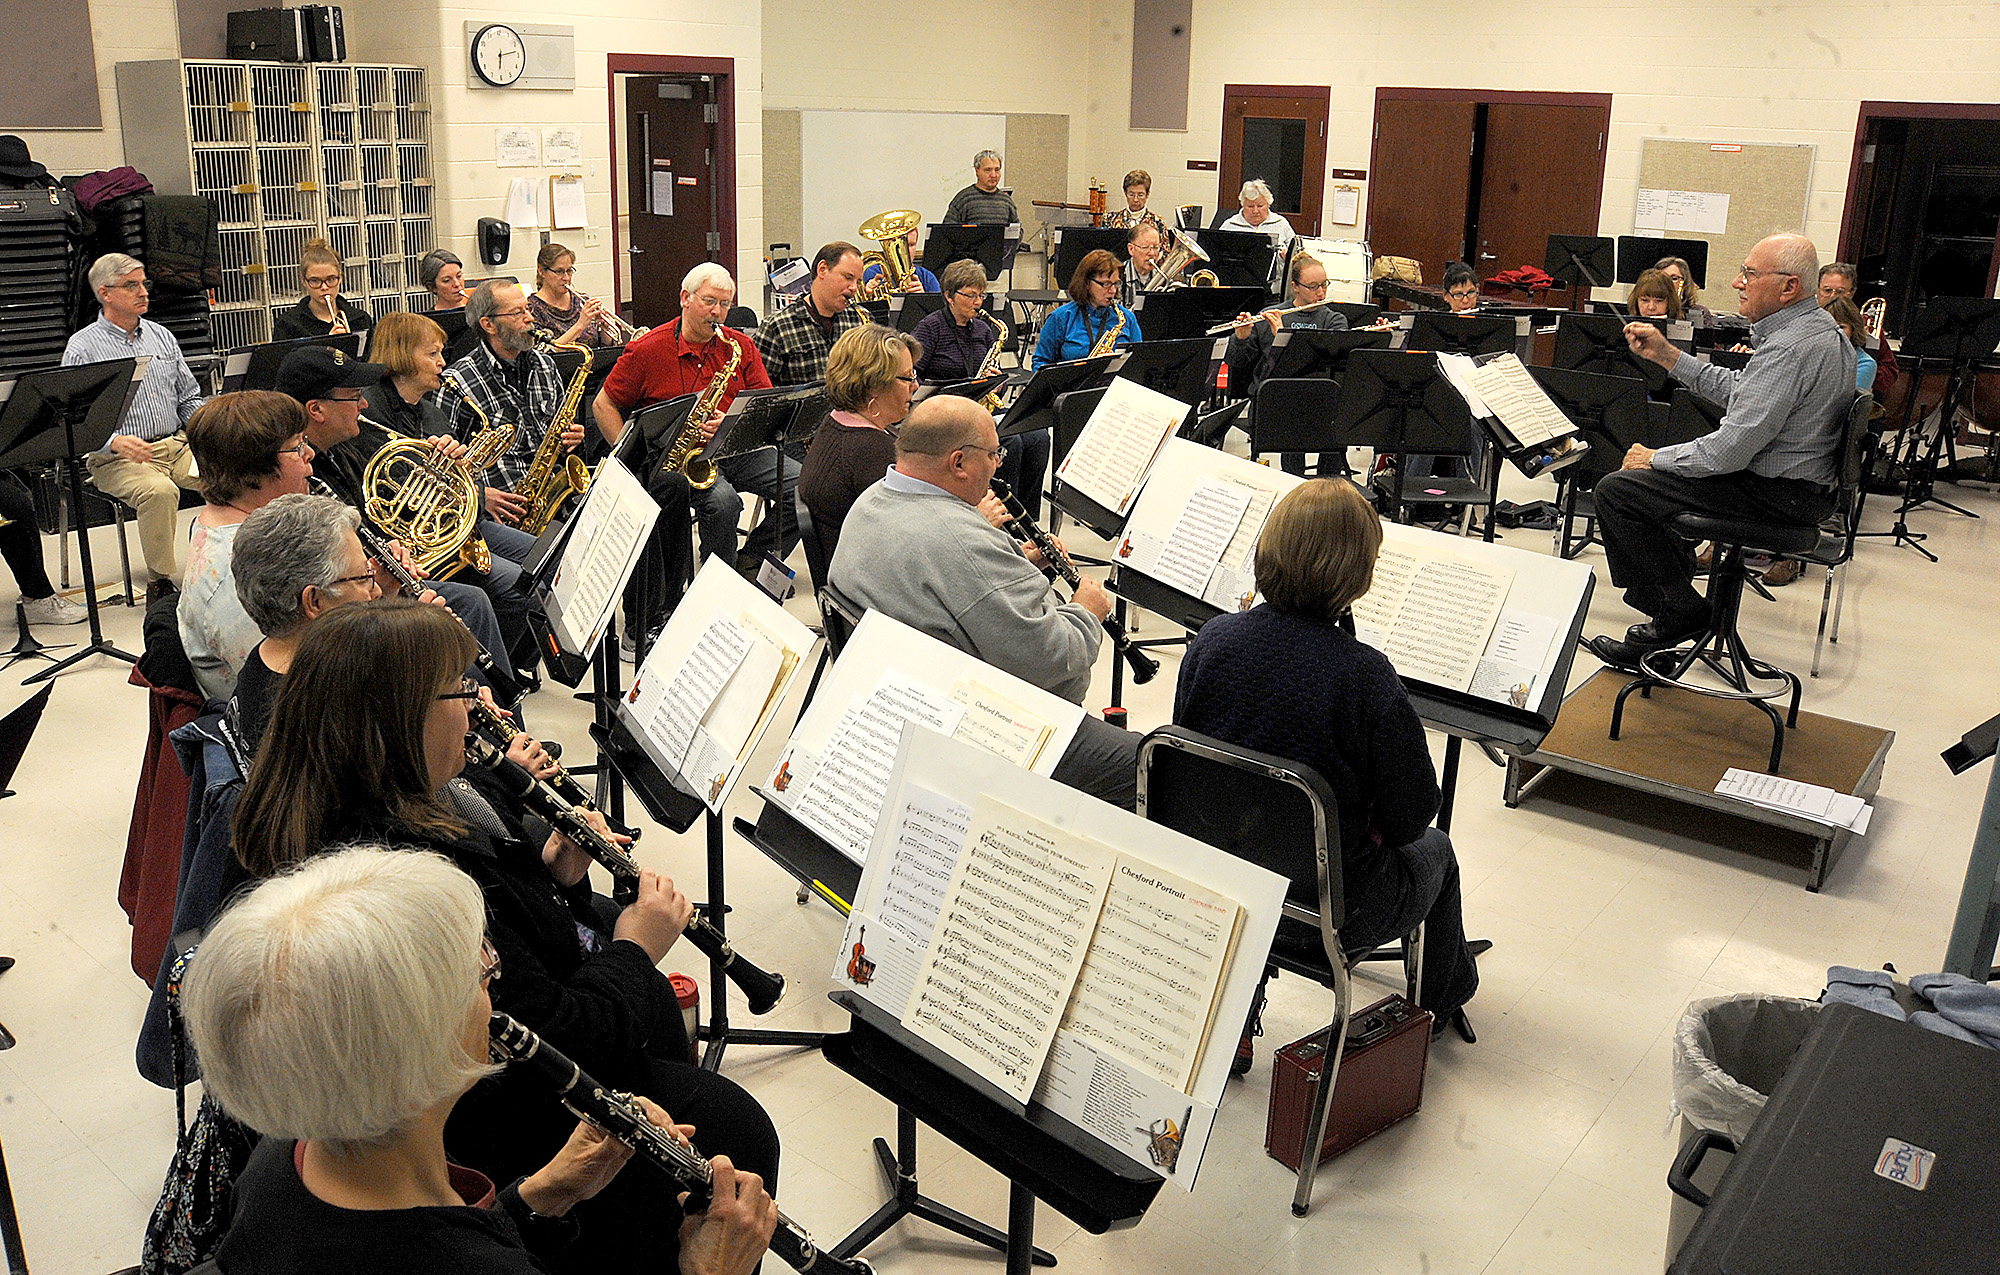 Indian Valley band a true musical community for 30 years - Chronicle